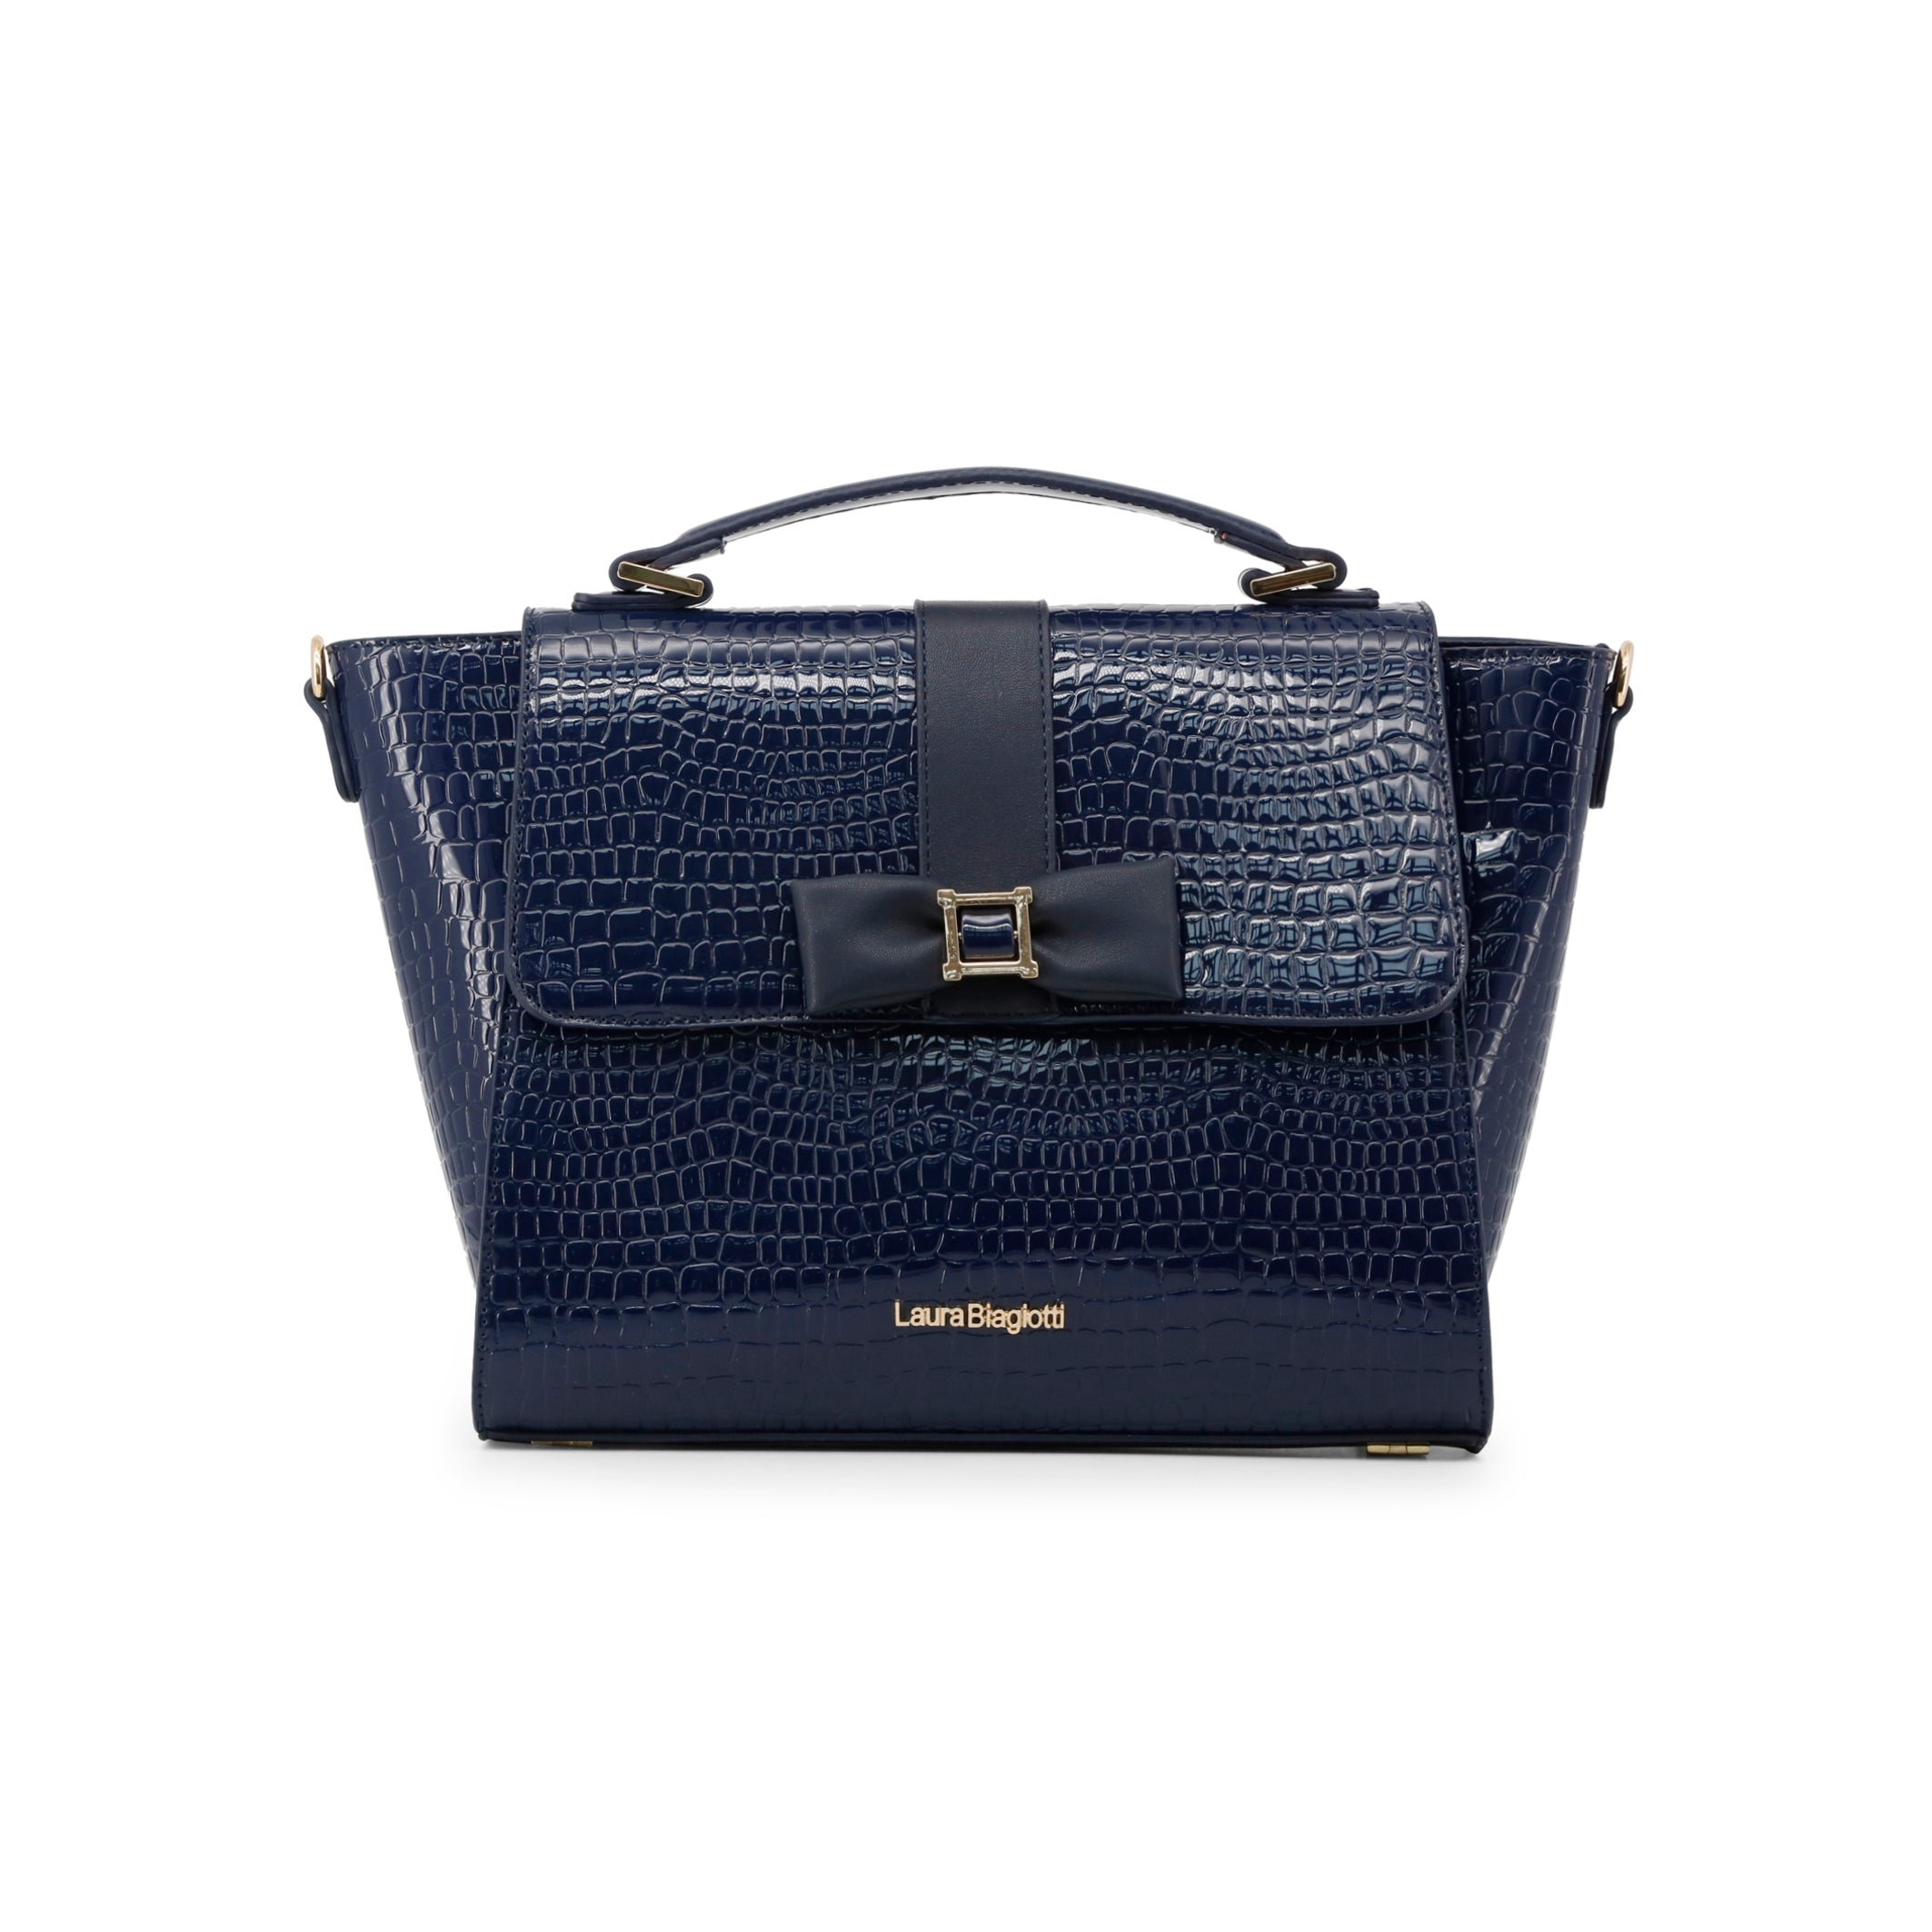 Laura Biagiotti Womens Handbags LB18S108-4